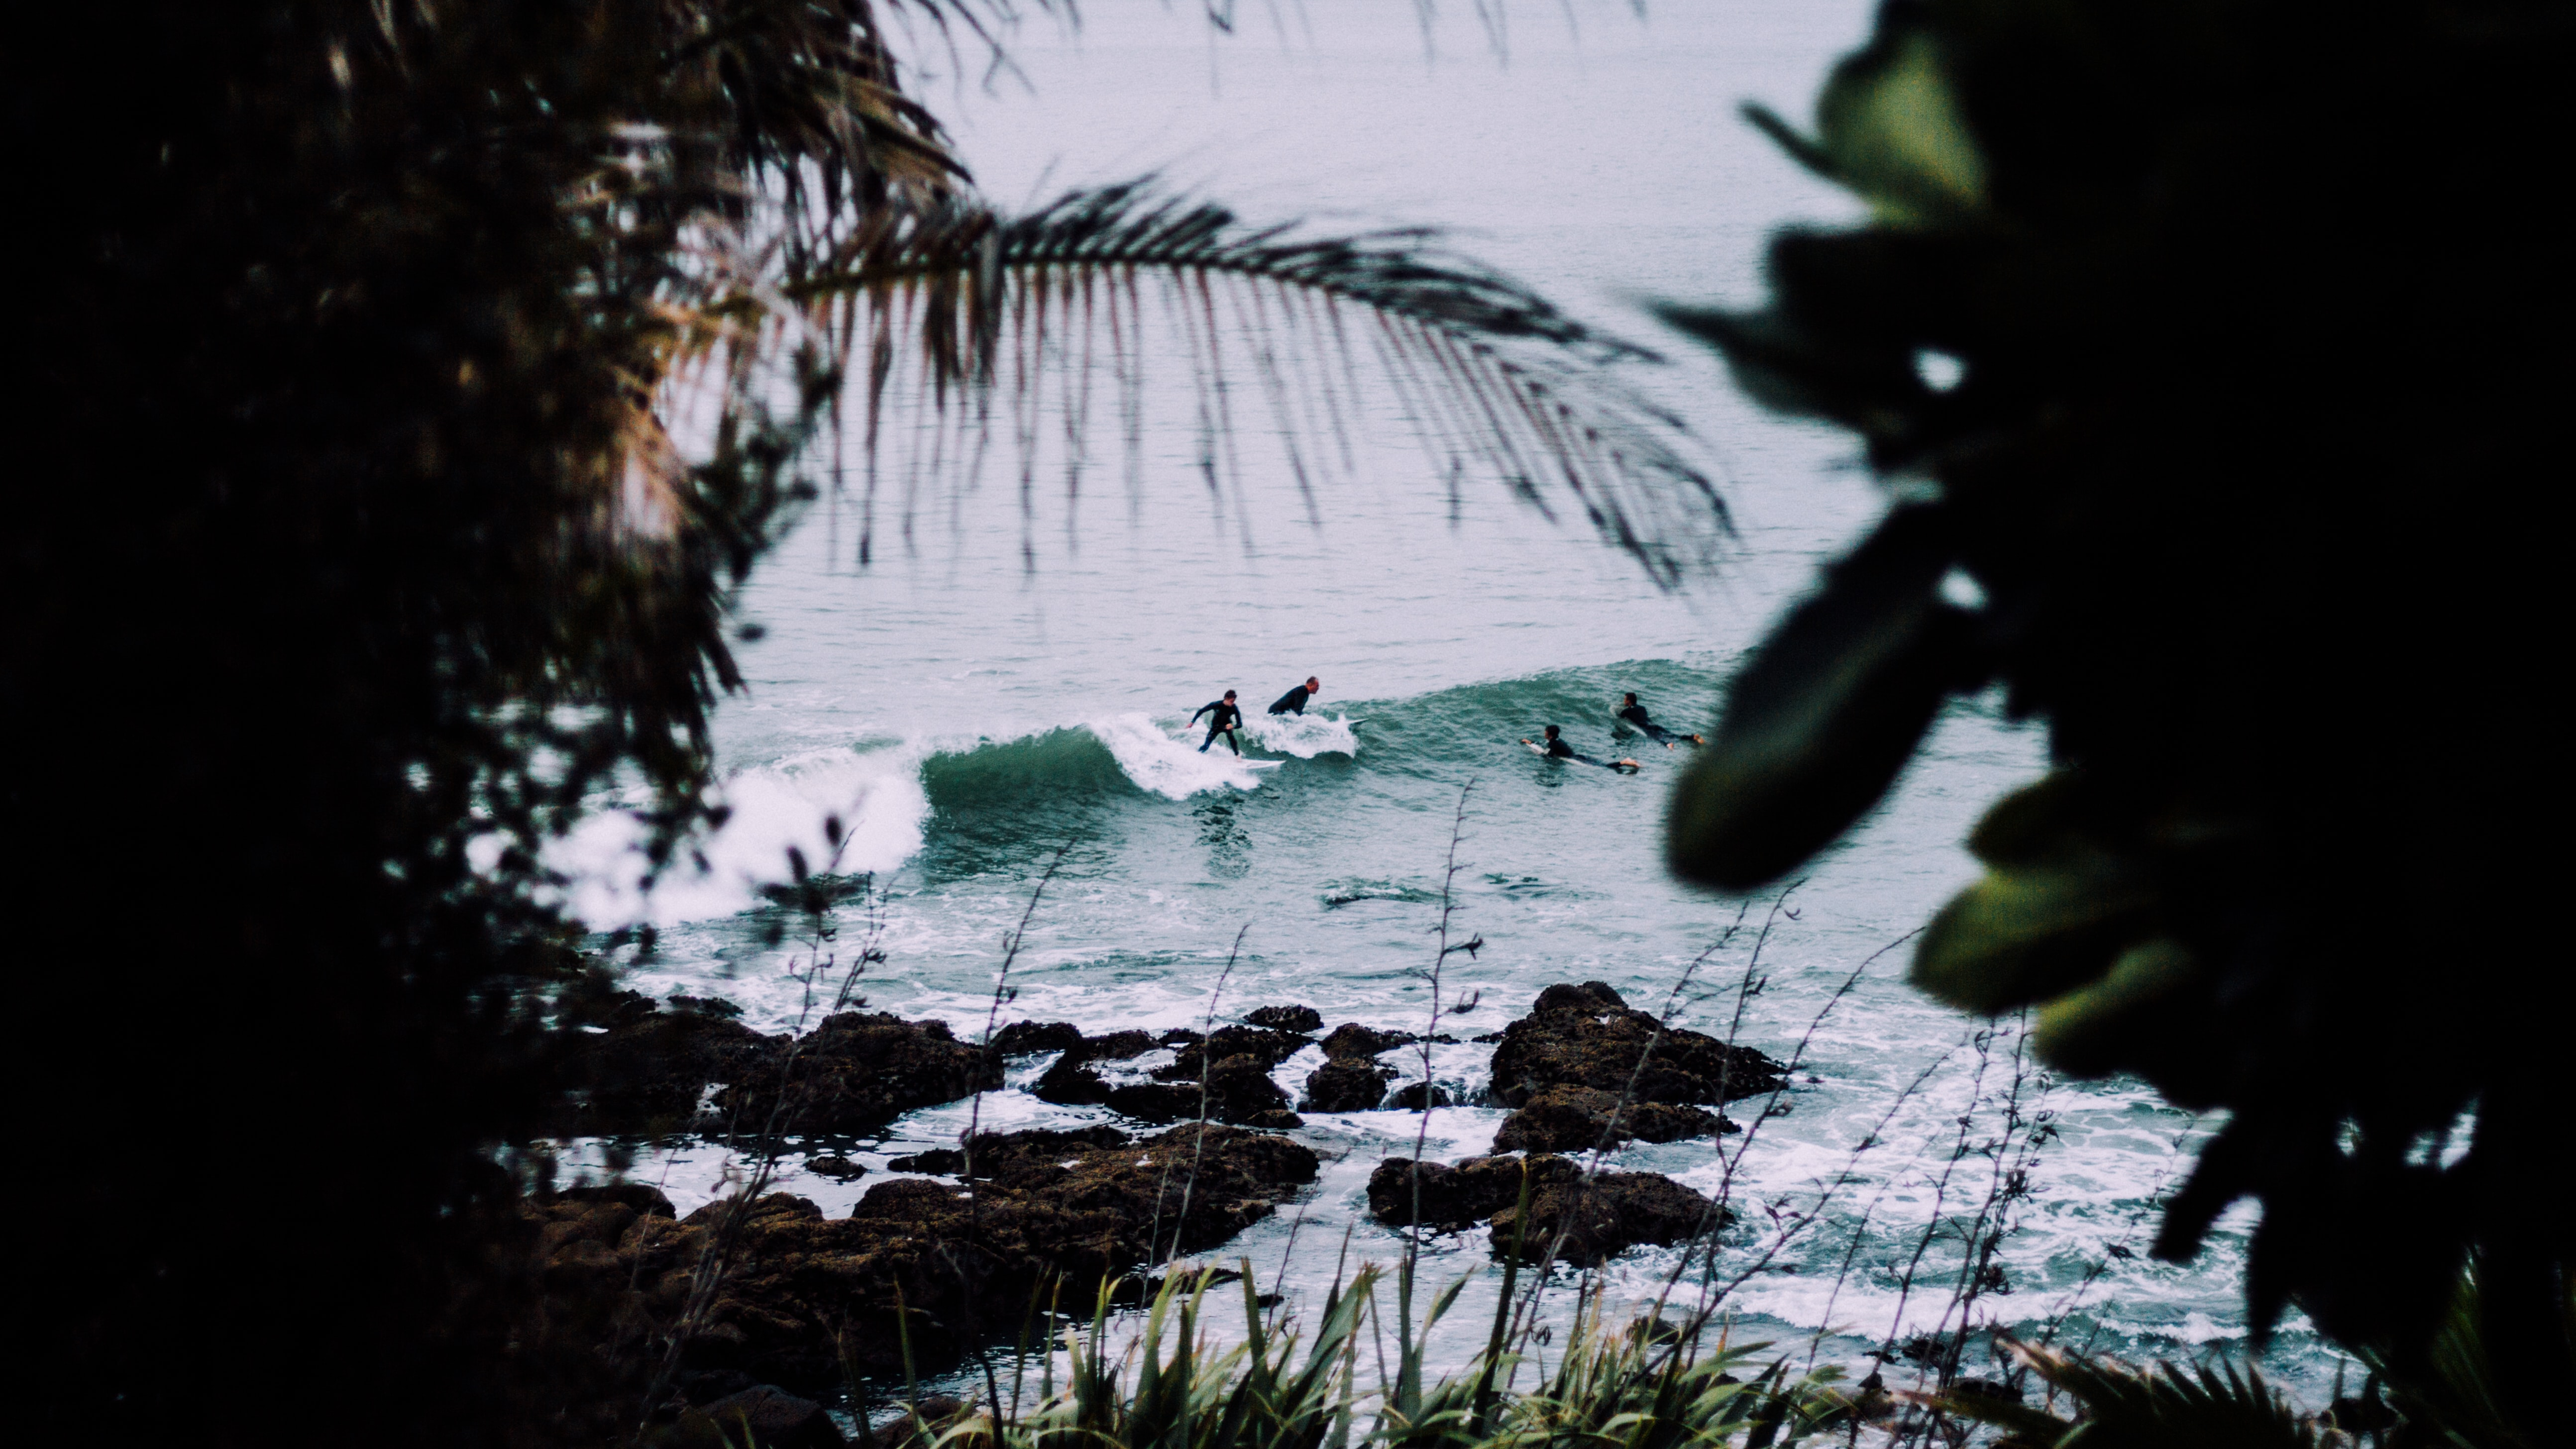 people riding on surfboards